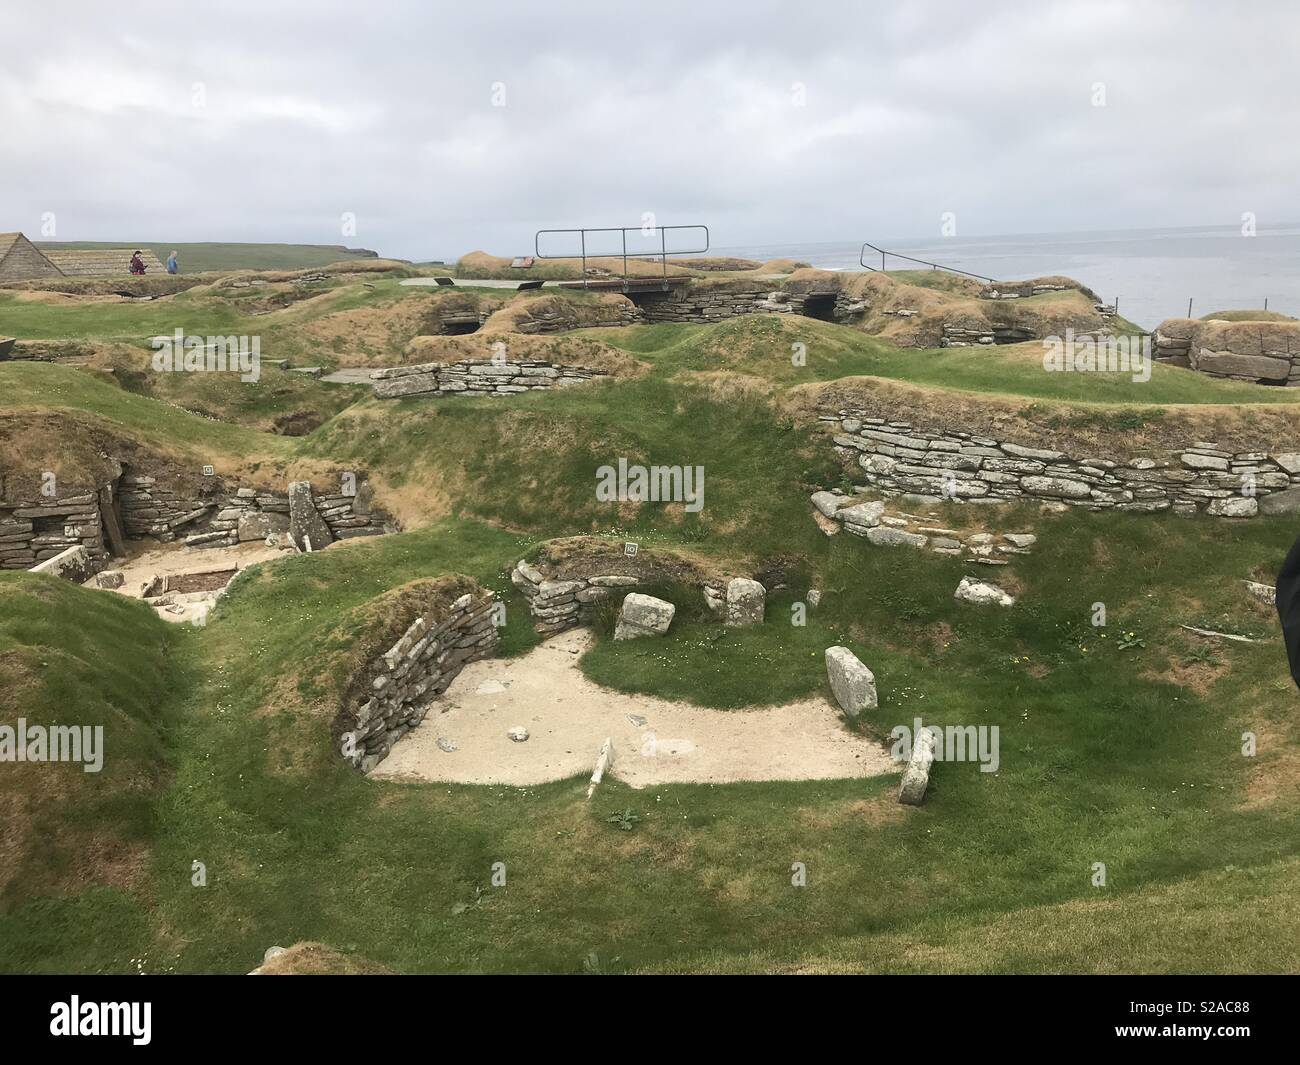 Skara Brae archaeological site in Sandwick, Orkney, Scotland - Stock Image